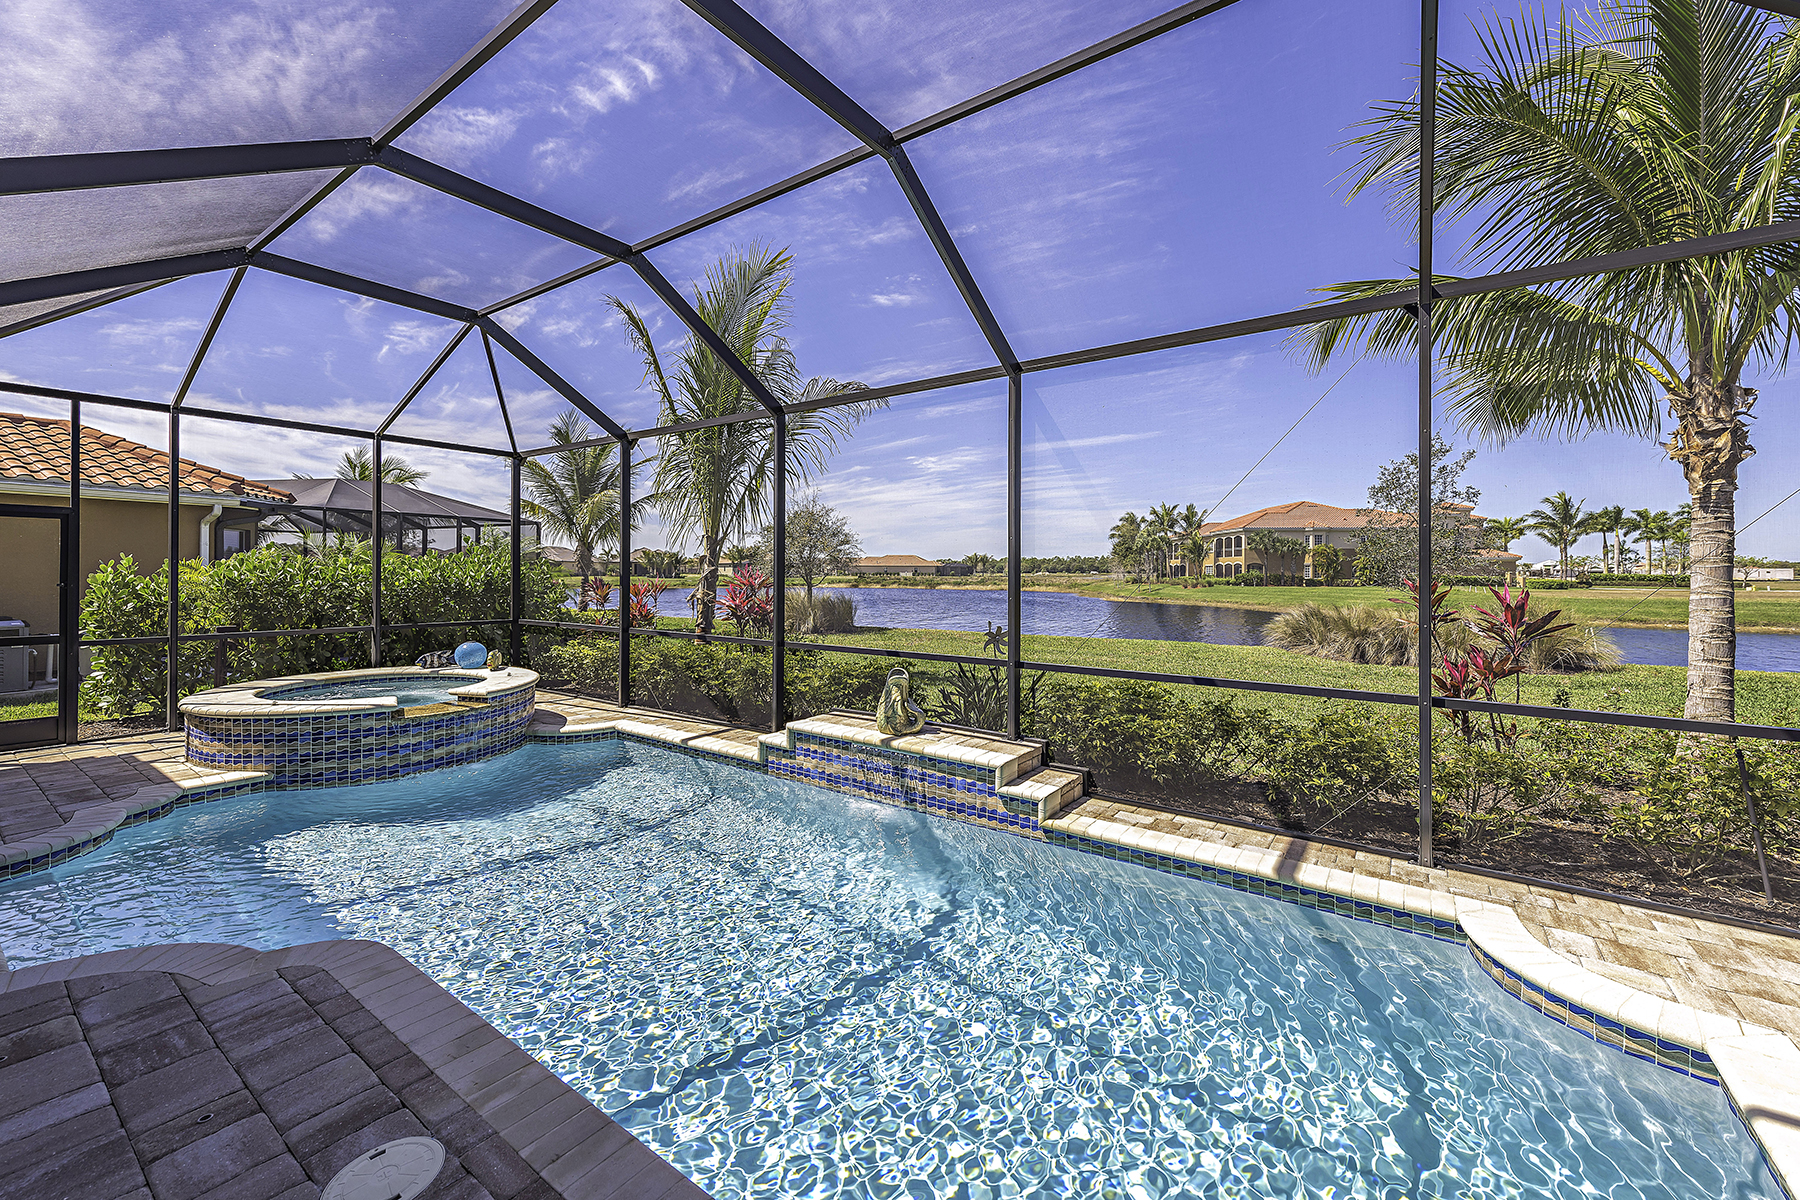 Single Family Home for Sale at FIDDLERS CREEK 9193 Campanile Cir Naples, Florida, 34114 United States